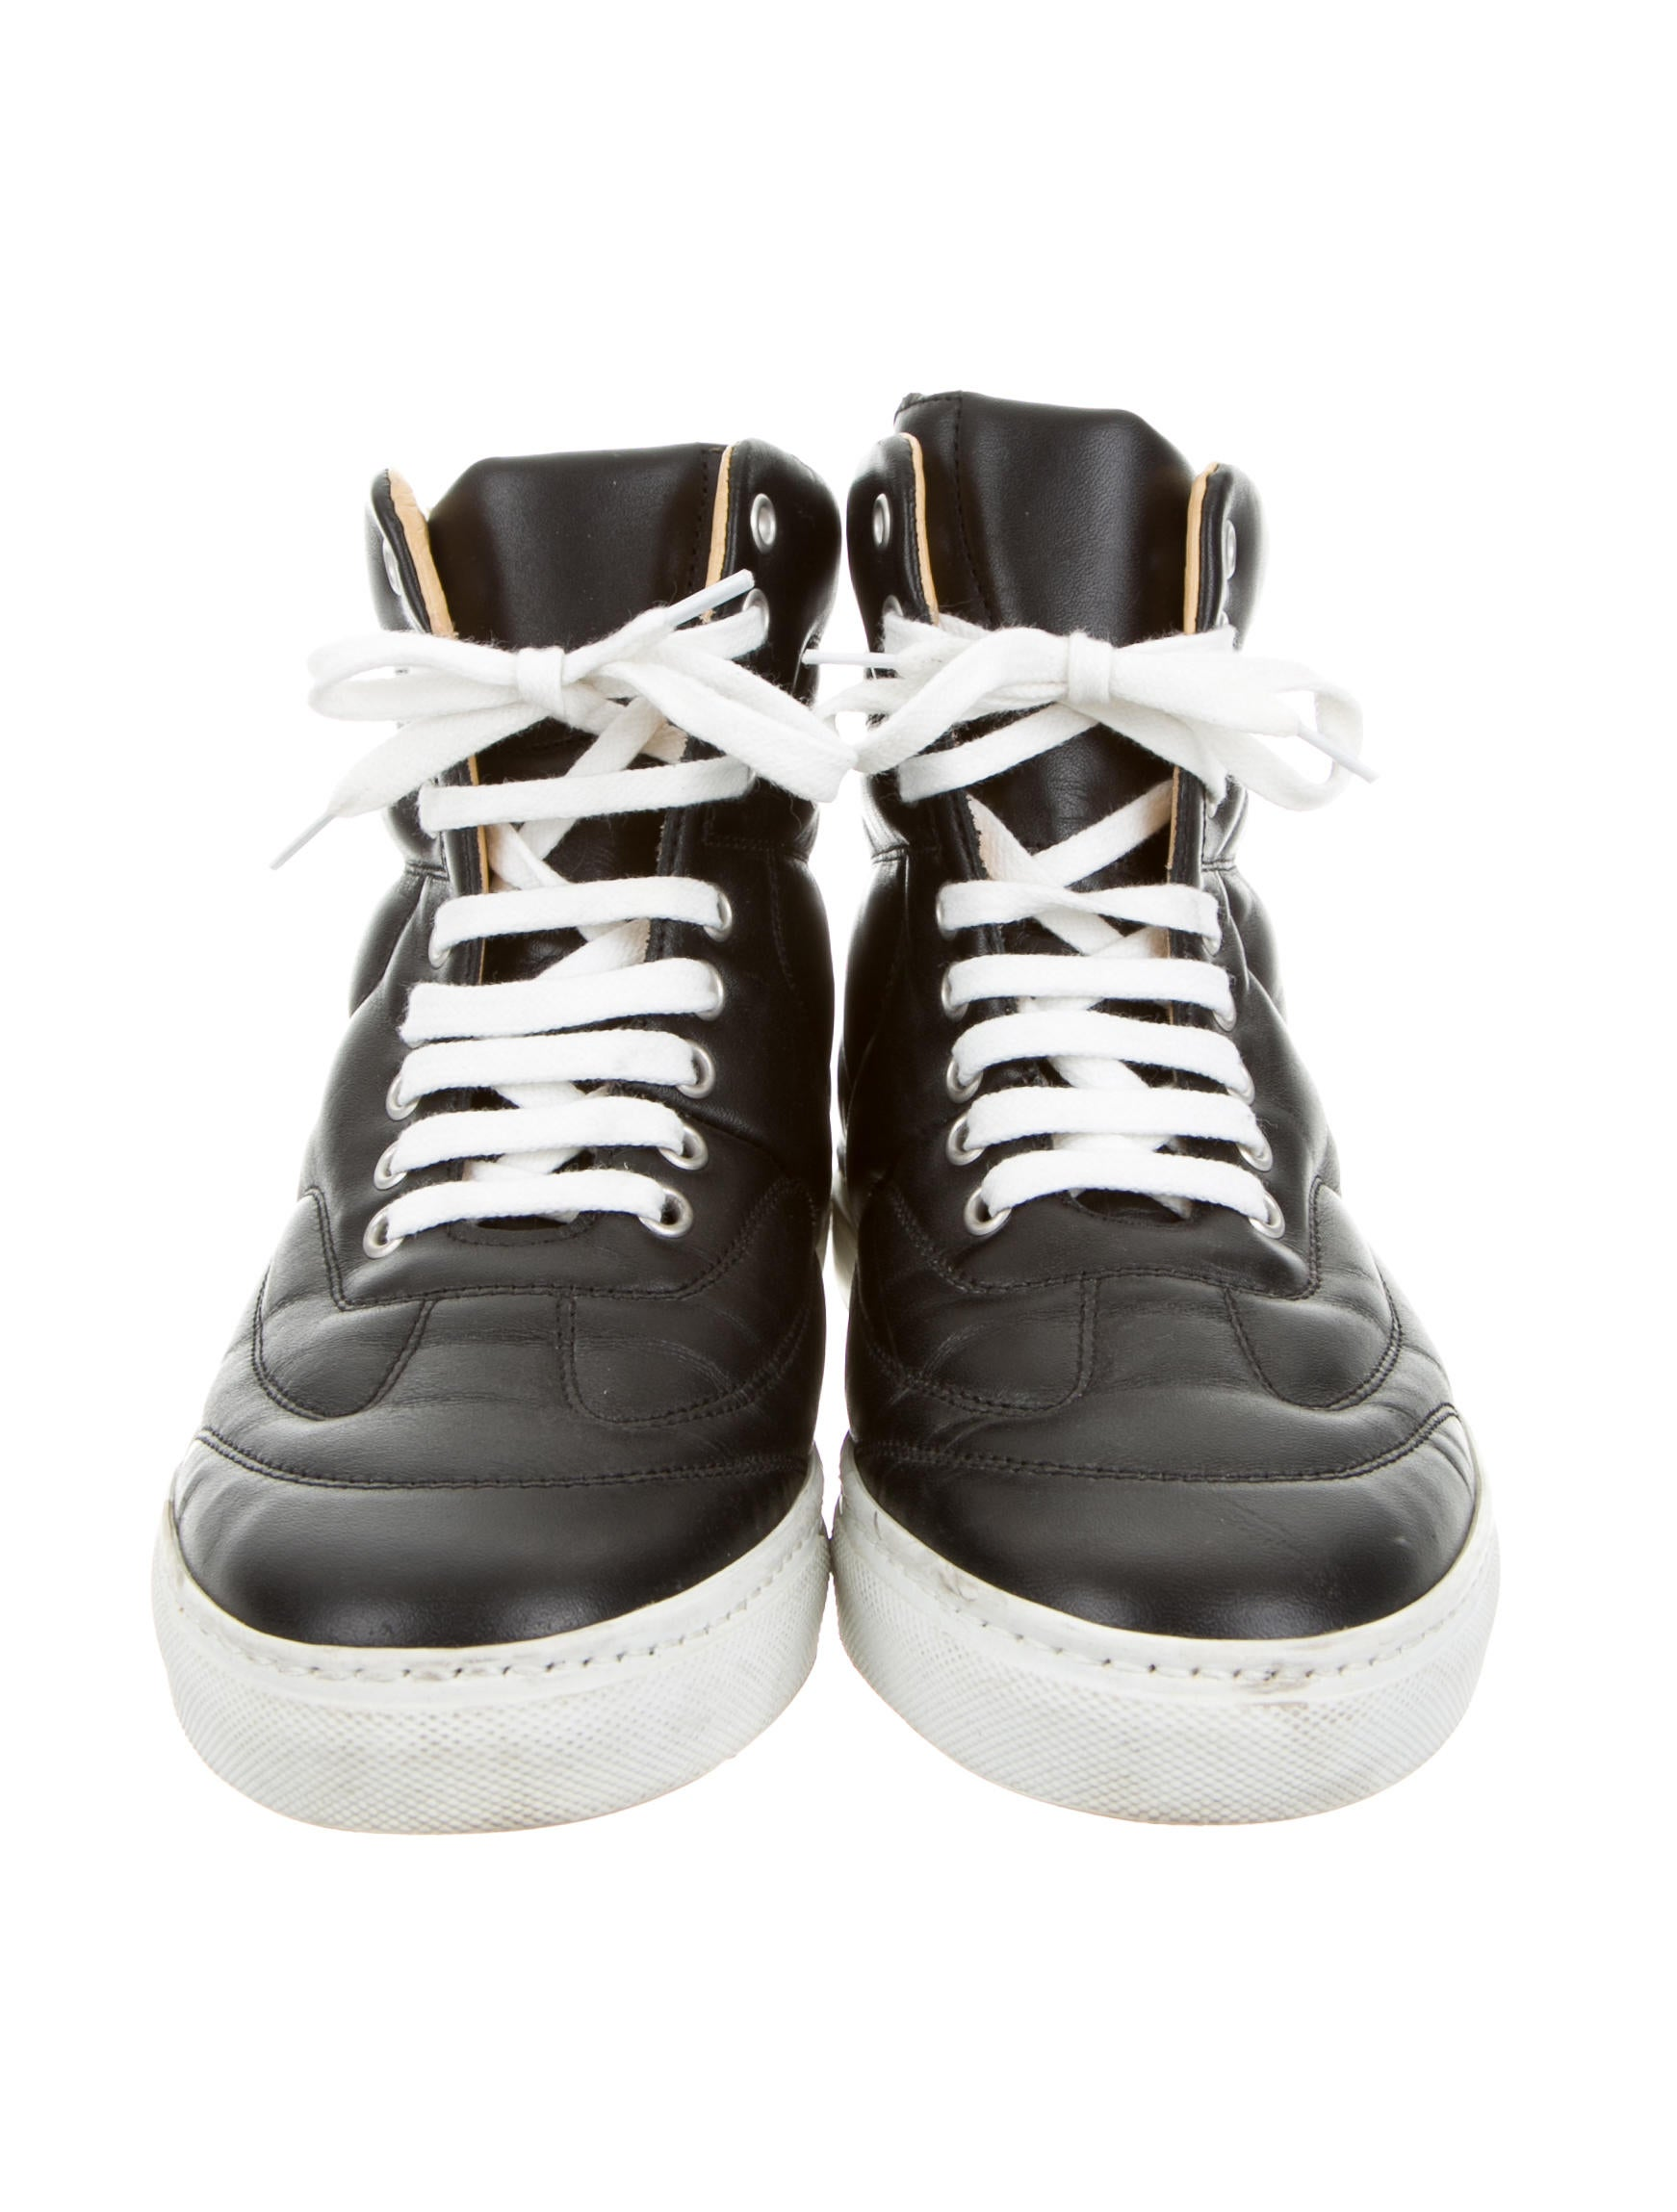 mm6 by maison martin margiela leather round toe sneakers shoes wmm21367 the realreal. Black Bedroom Furniture Sets. Home Design Ideas